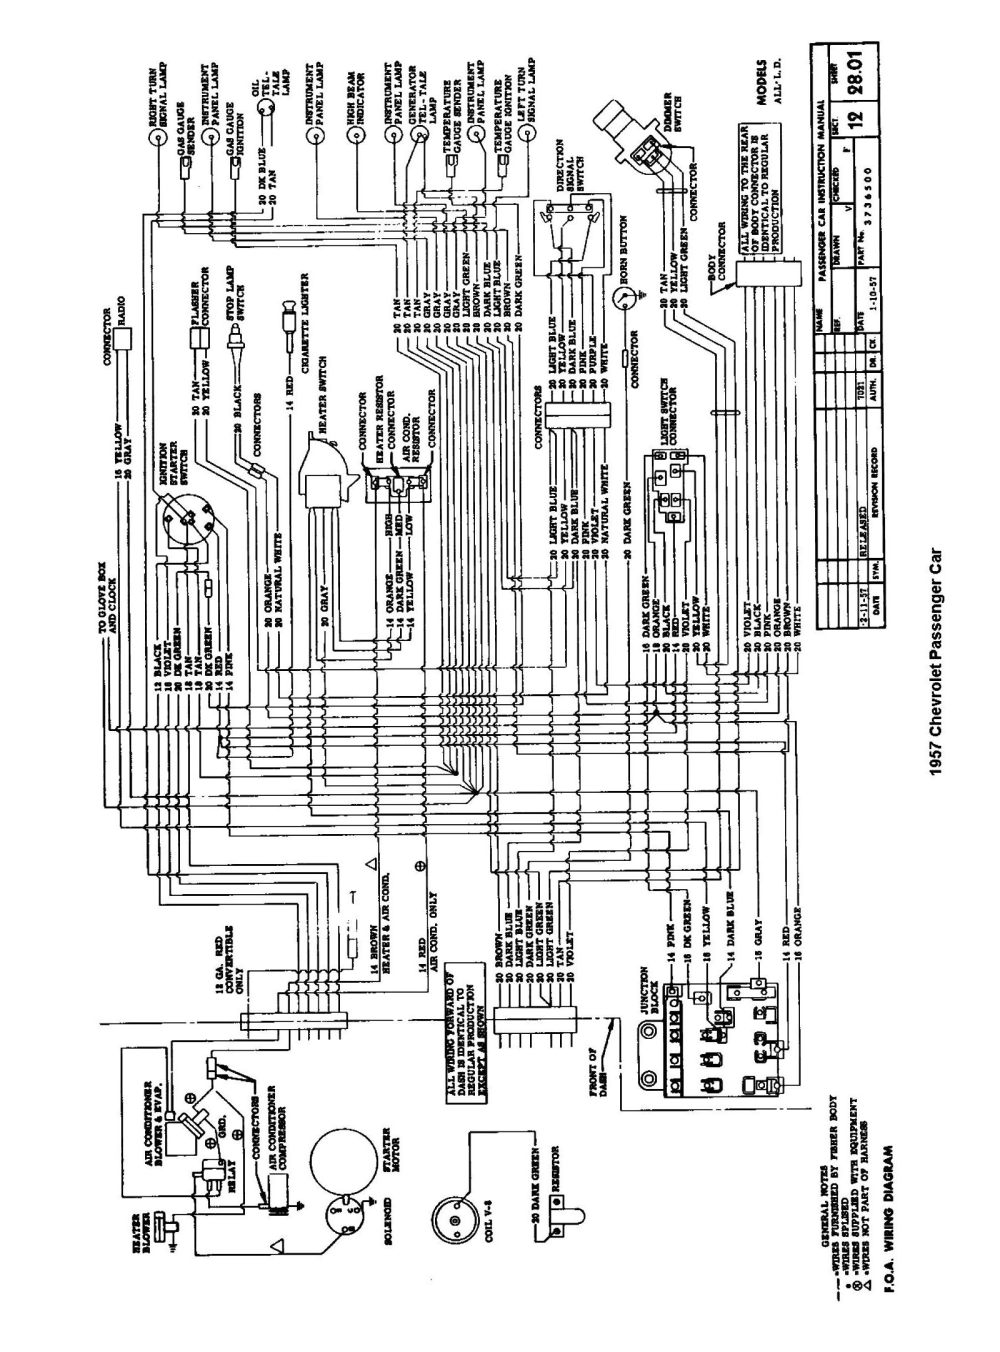 medium resolution of chevy wiring diagrams 1956 chevy headlight switch wiring diagram 1957 chevy headlight wiring diagram